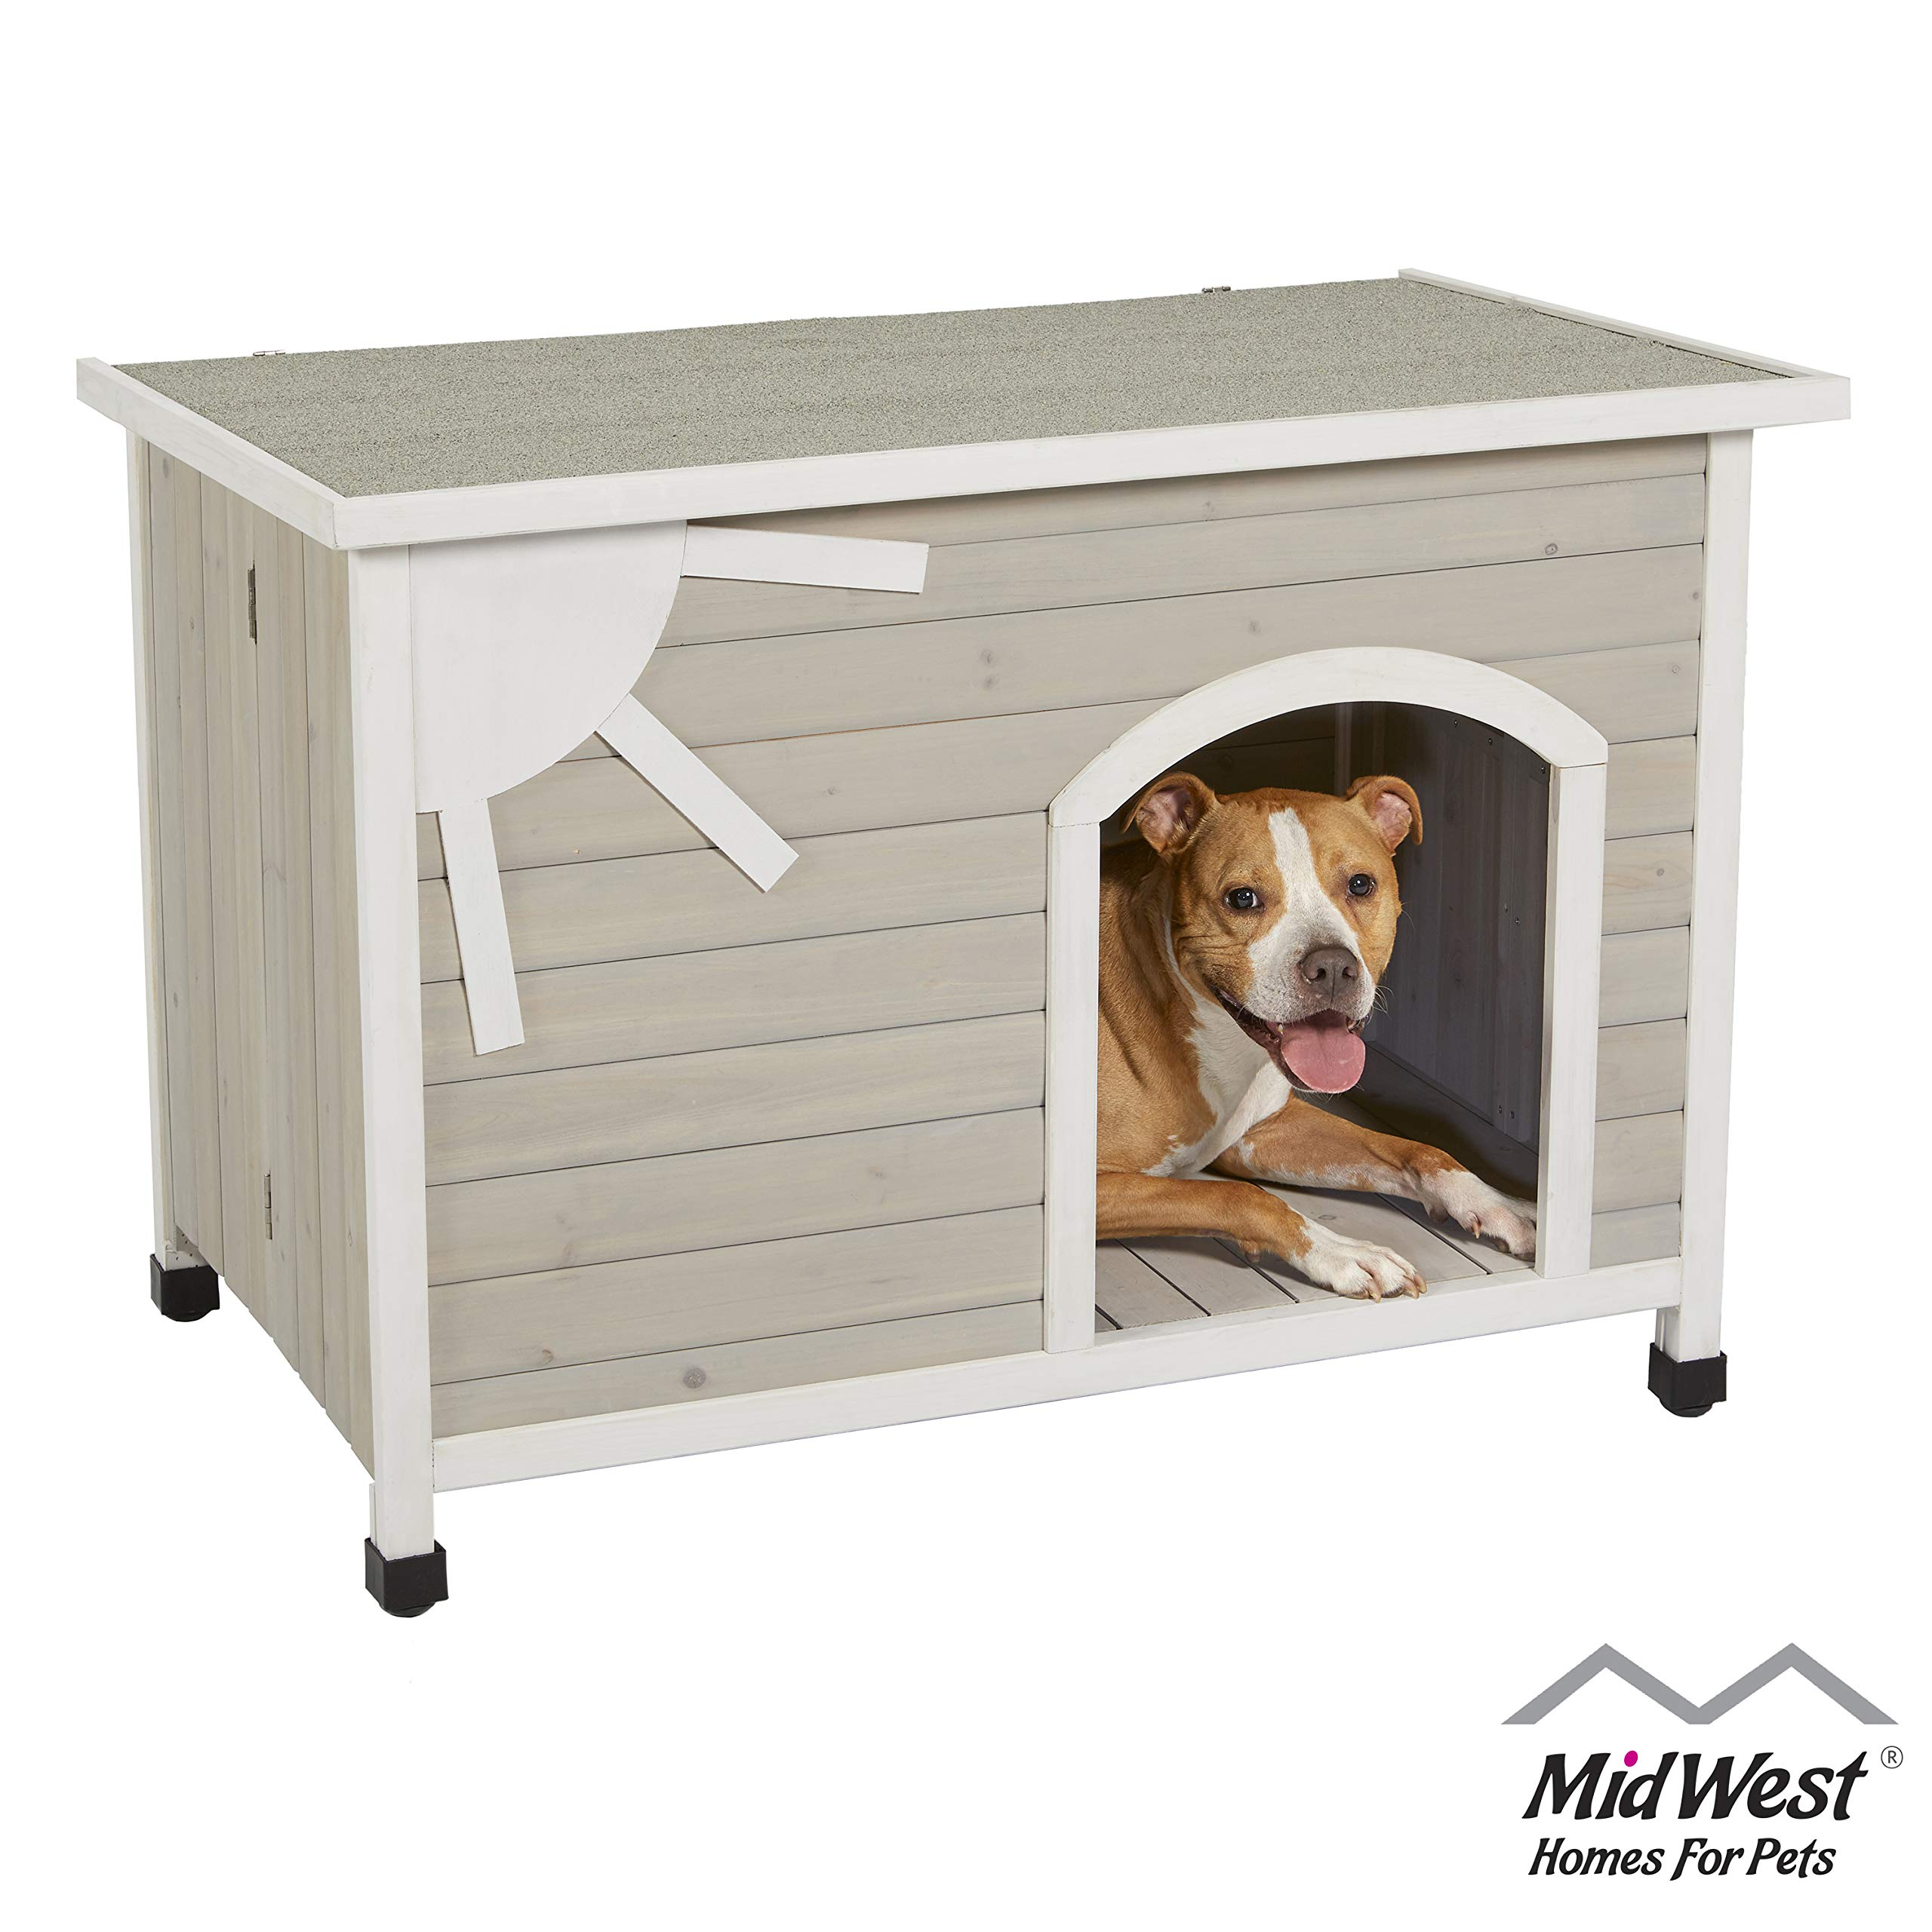 "MidWest Homes for Pets Eilio Outdoor Dog House | Durable Dog House Features Easy ""No-Tools"" Assembly"